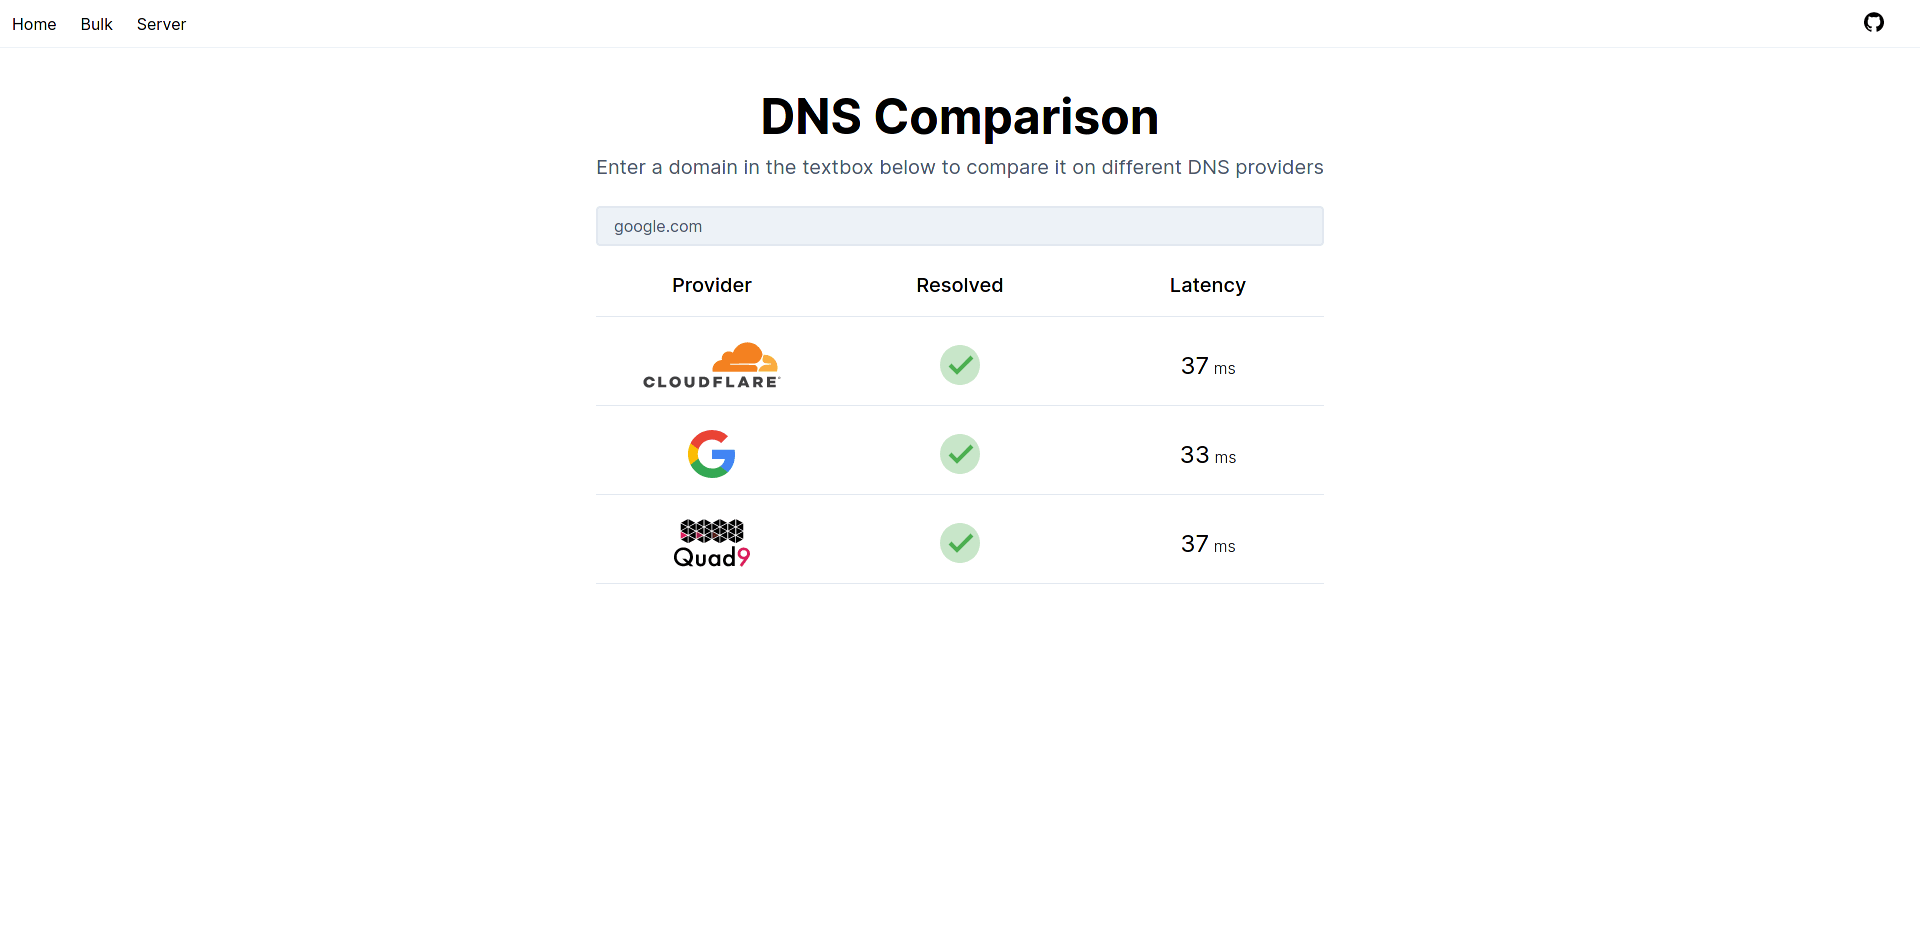 A website to compare the performance of major DNS providers when it comes to blocking criminal domains